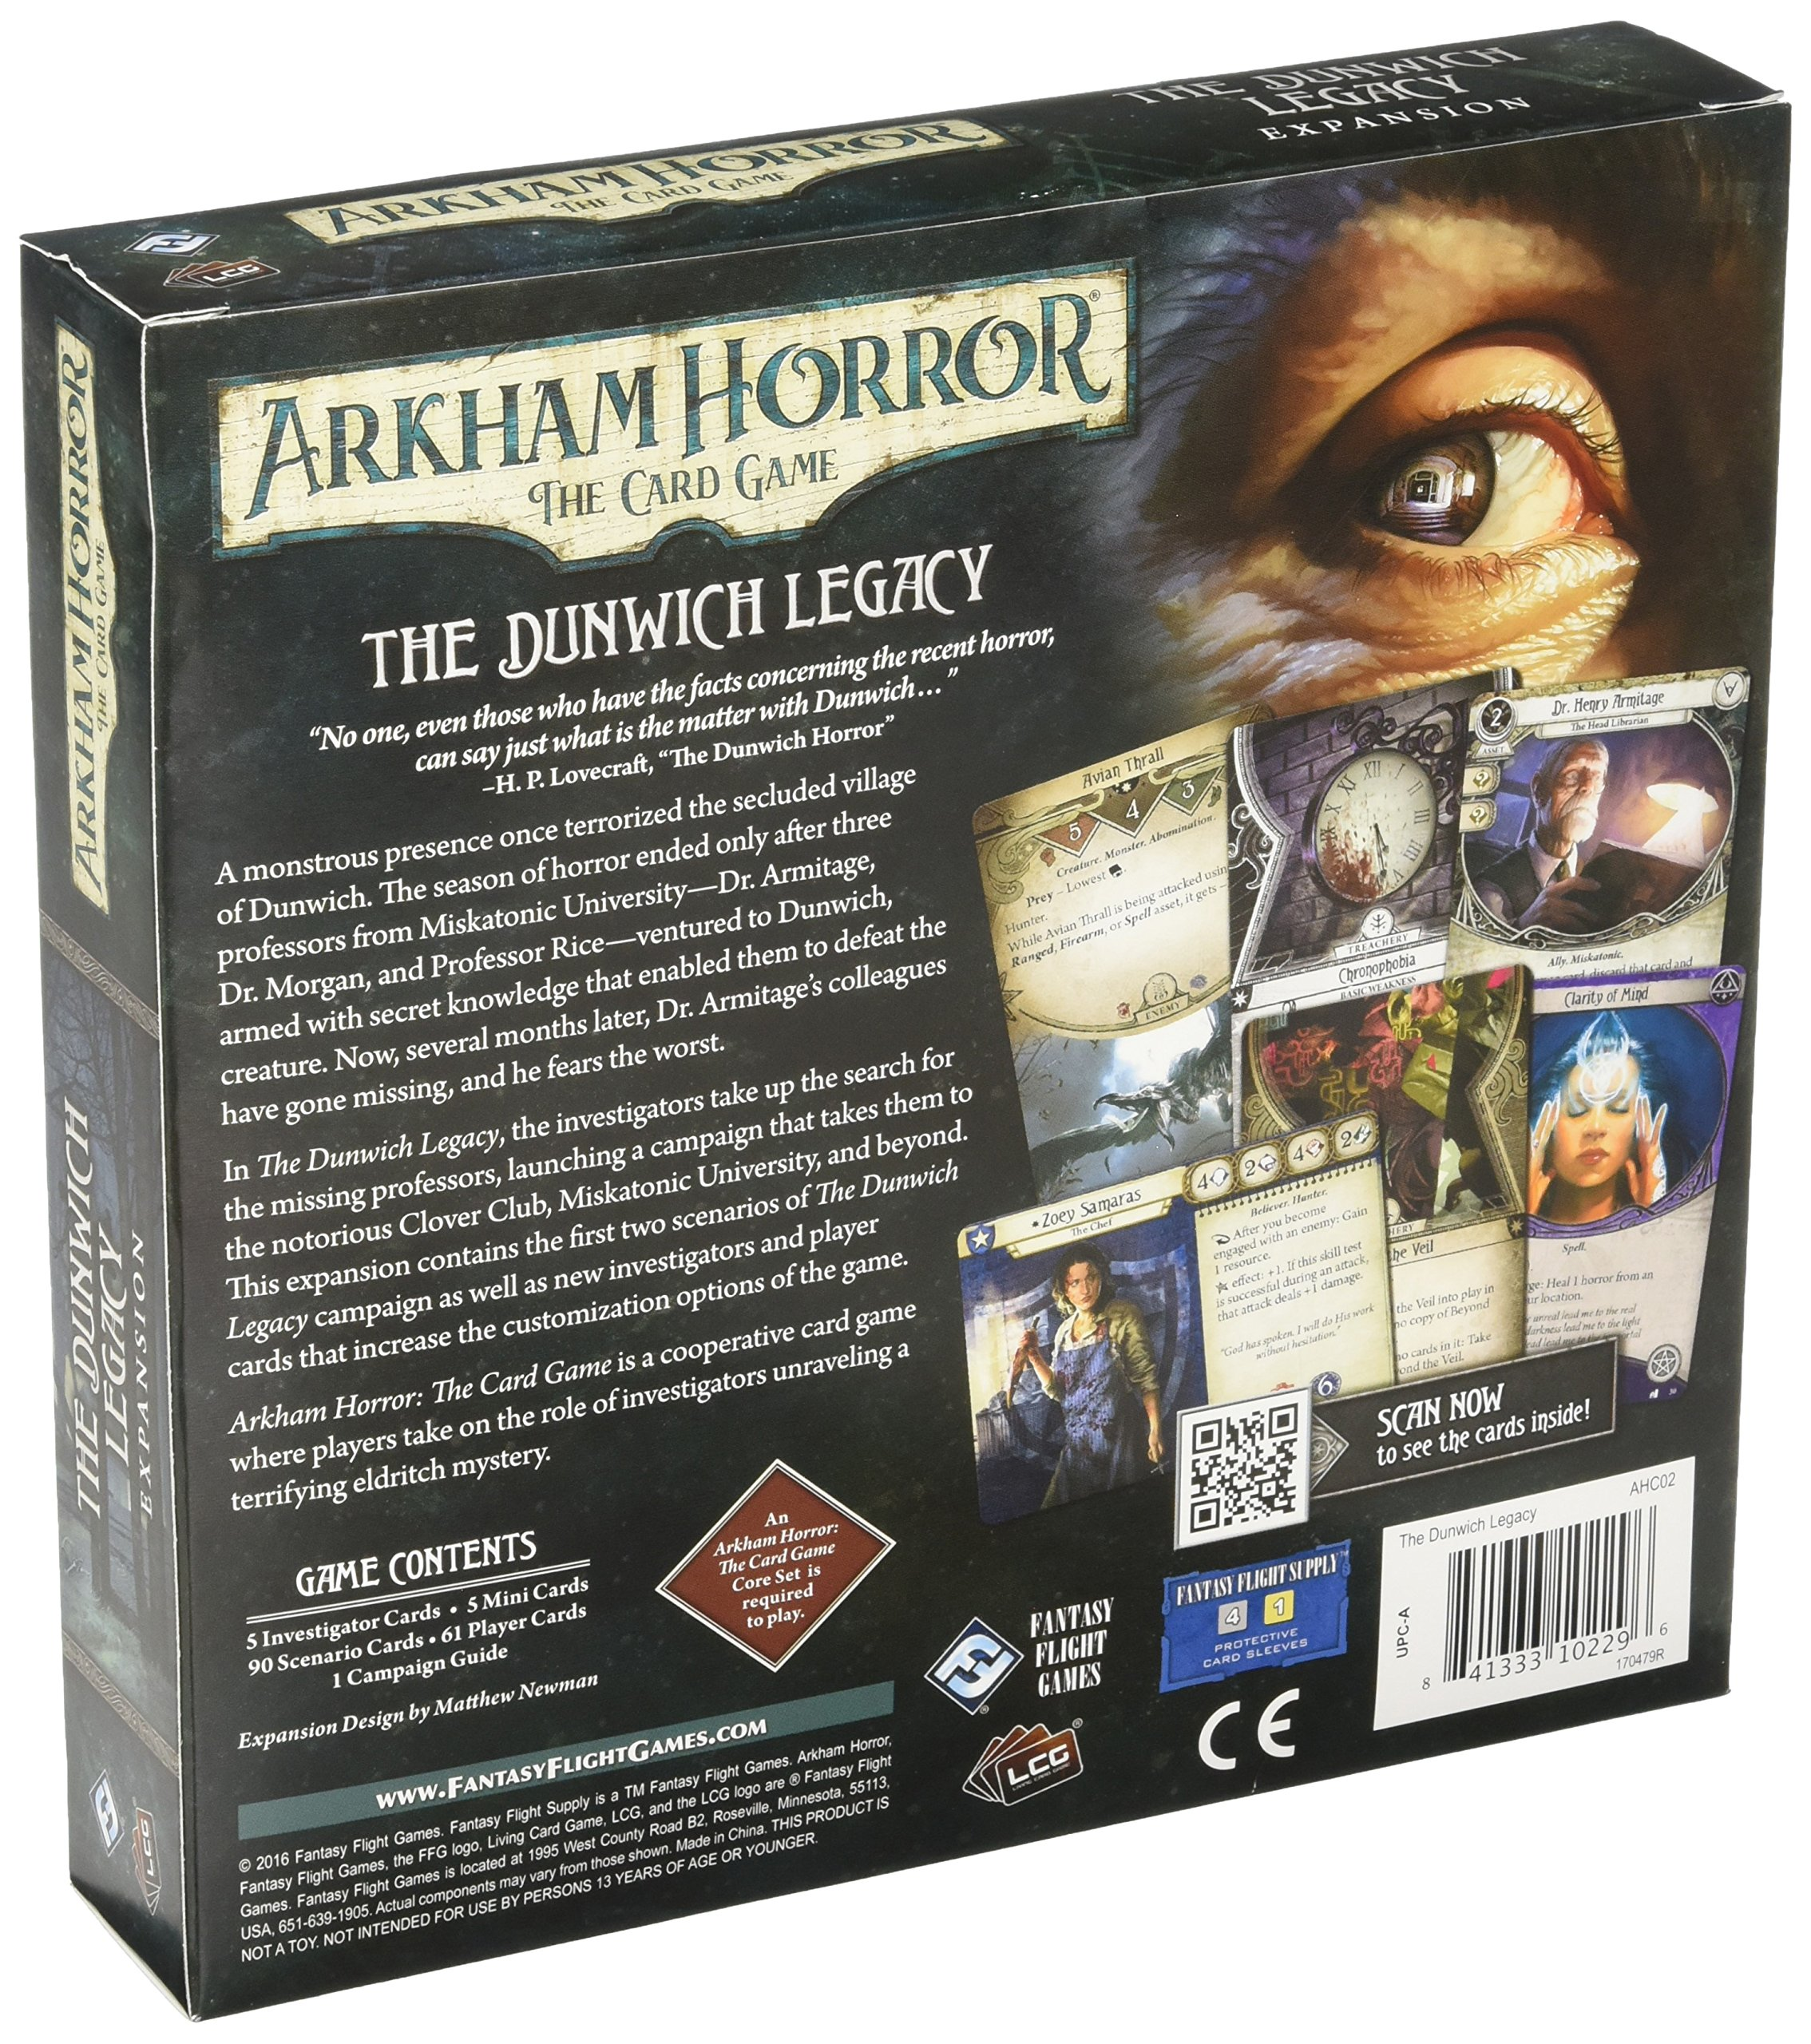 Arkham Horror: The Card Game - The Dunwich Legacy Box Expansion